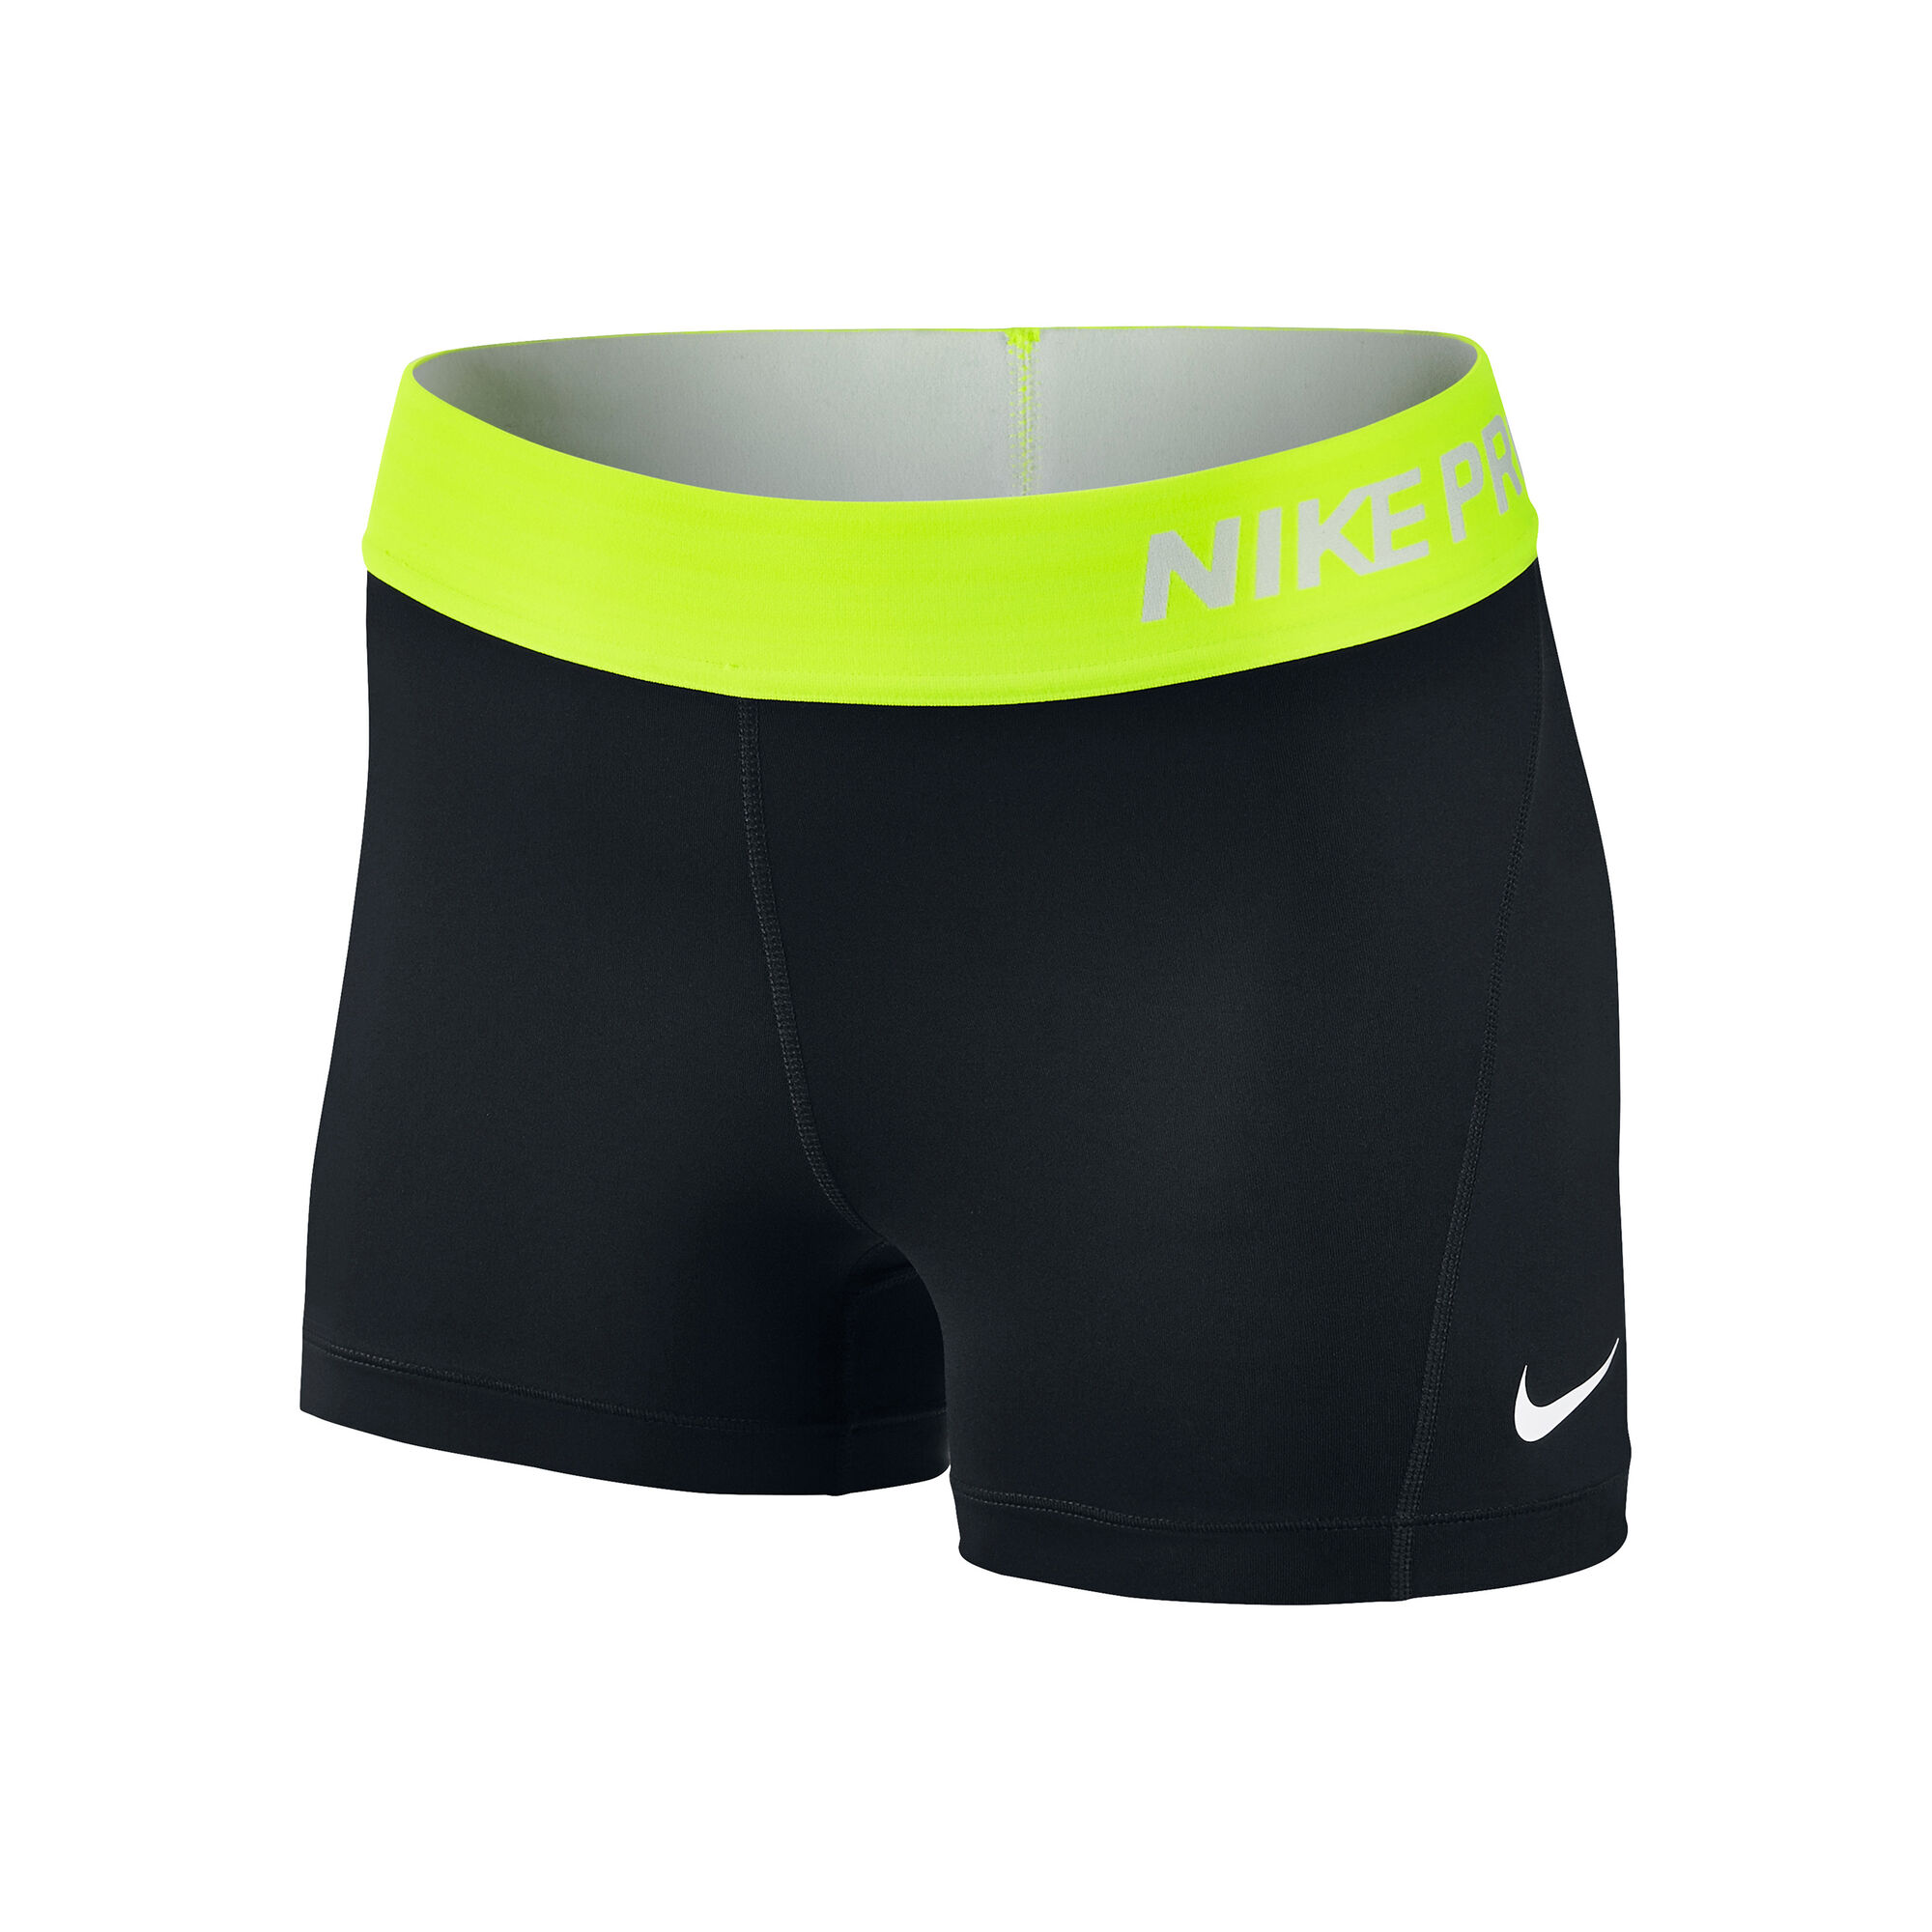 nike pro dry fit 3 shorts damen schwarz neongelb. Black Bedroom Furniture Sets. Home Design Ideas